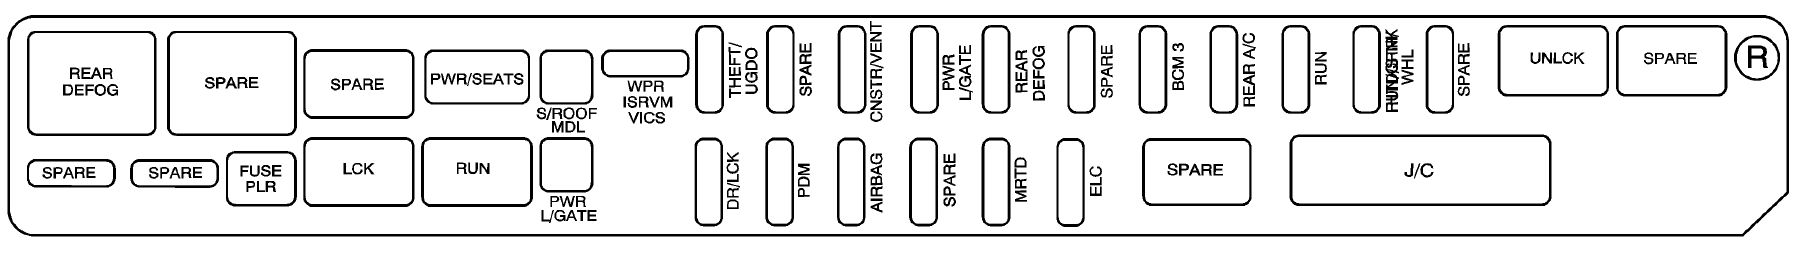 1981 Cadillac Fuse Box Schematic Symbols Diagram